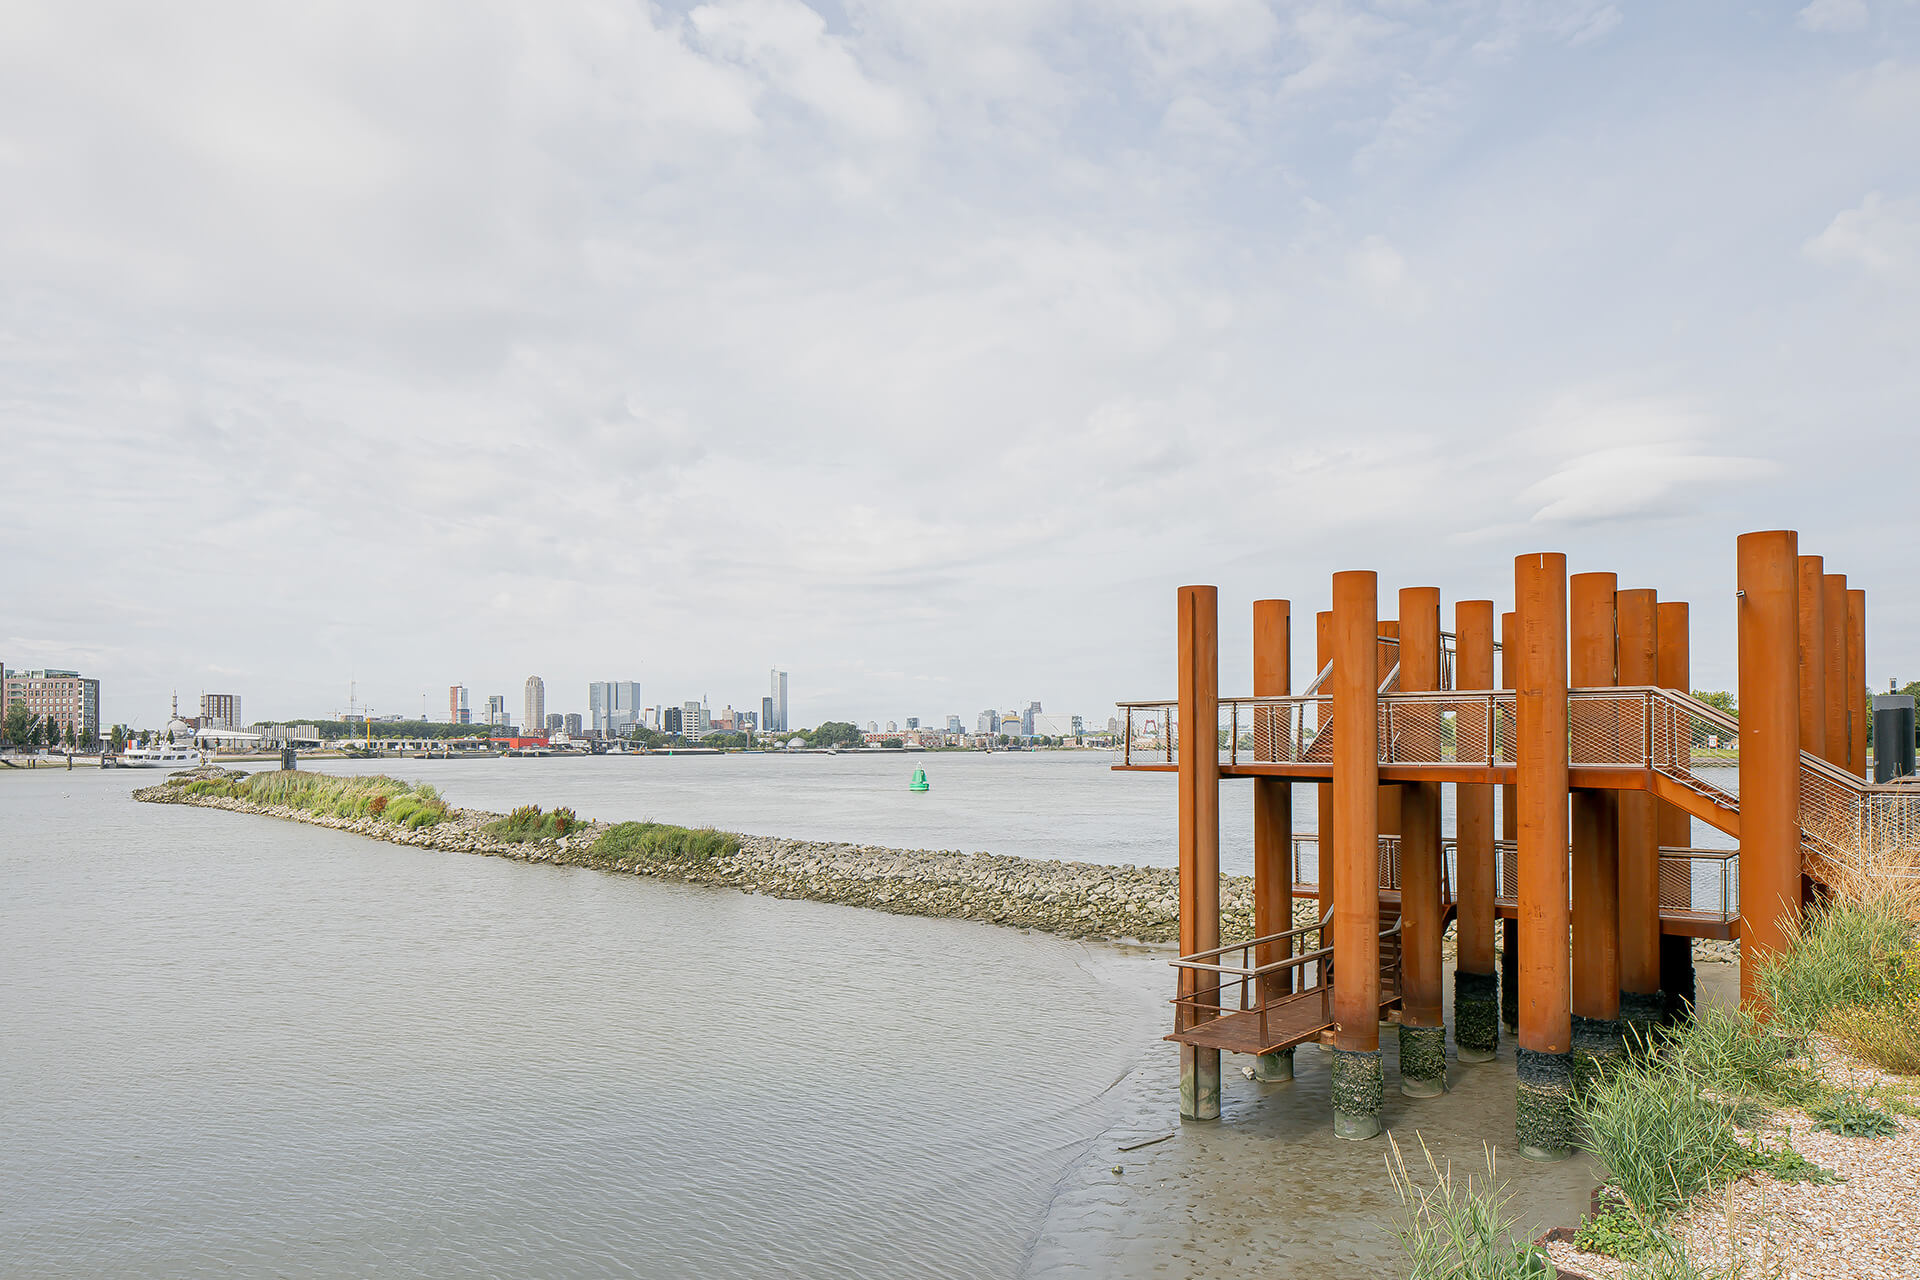 Water Woods provides vantage points towards the Maas river and the city | Water Woods Maaspoints | Next Architects | STIRworld